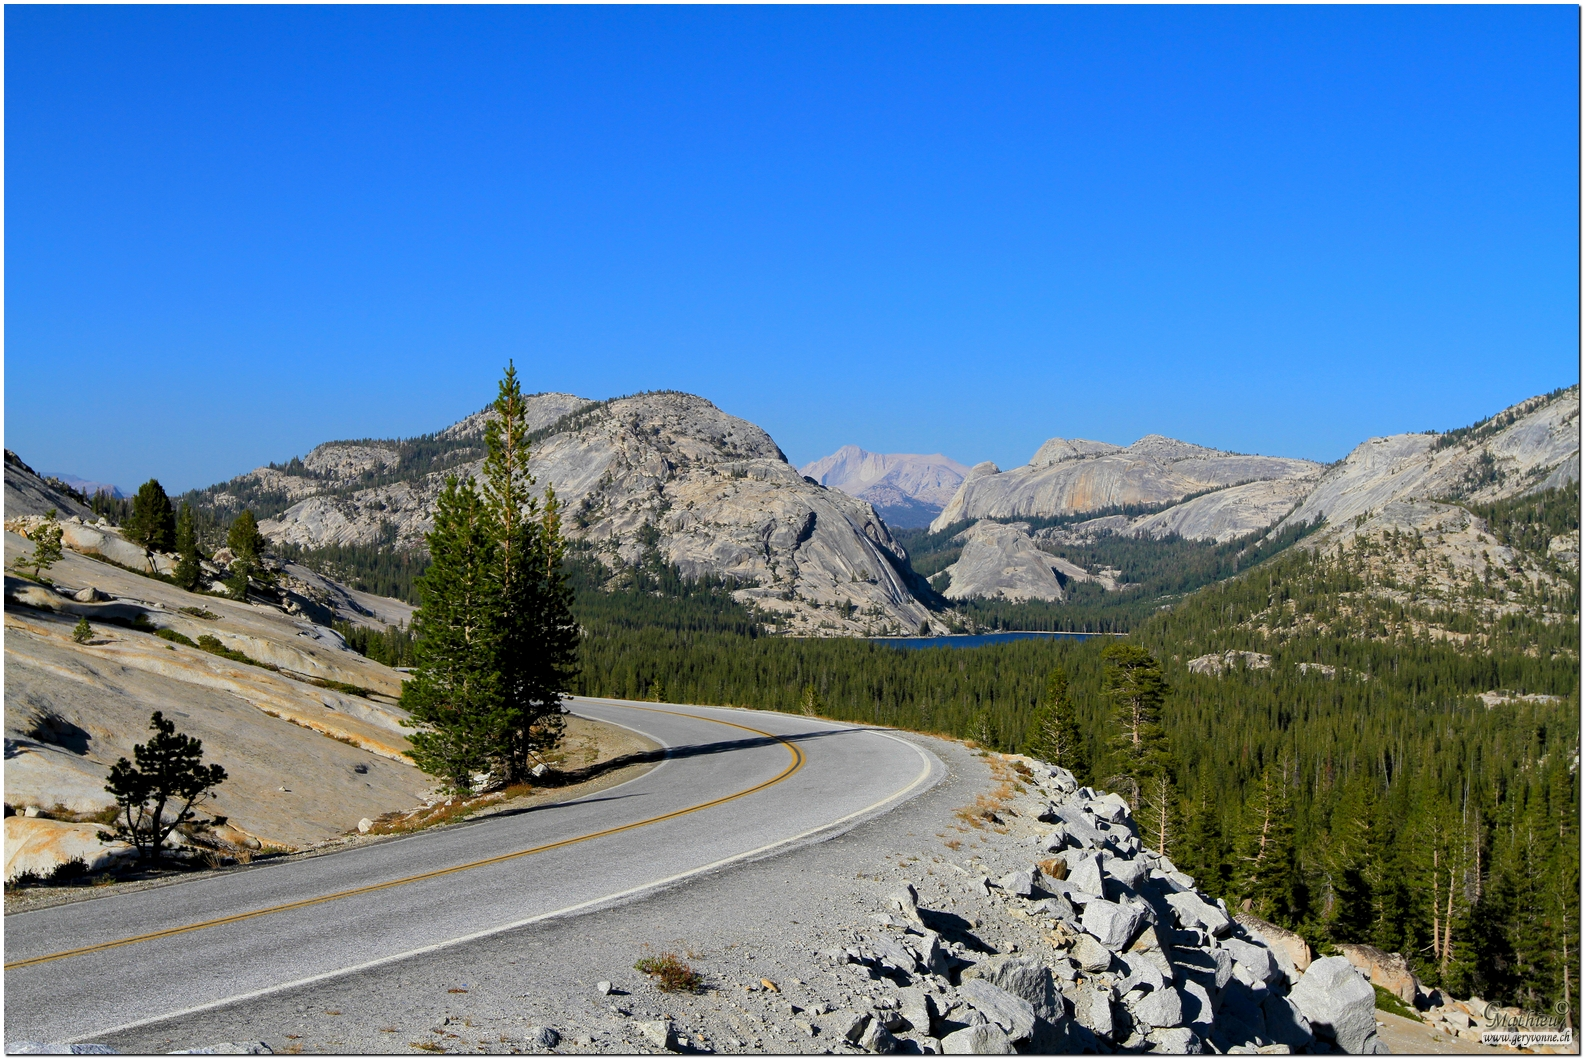 Yosemite, Tioga Road